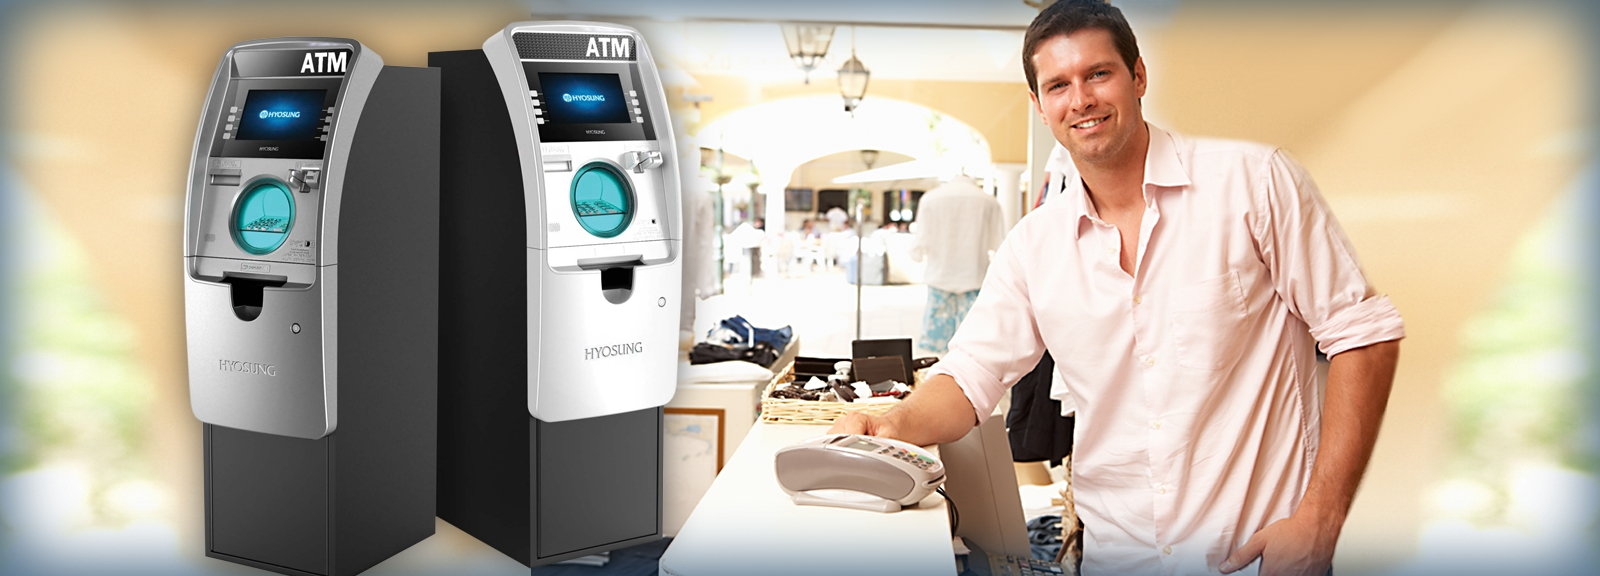 ATM solutions for merchants